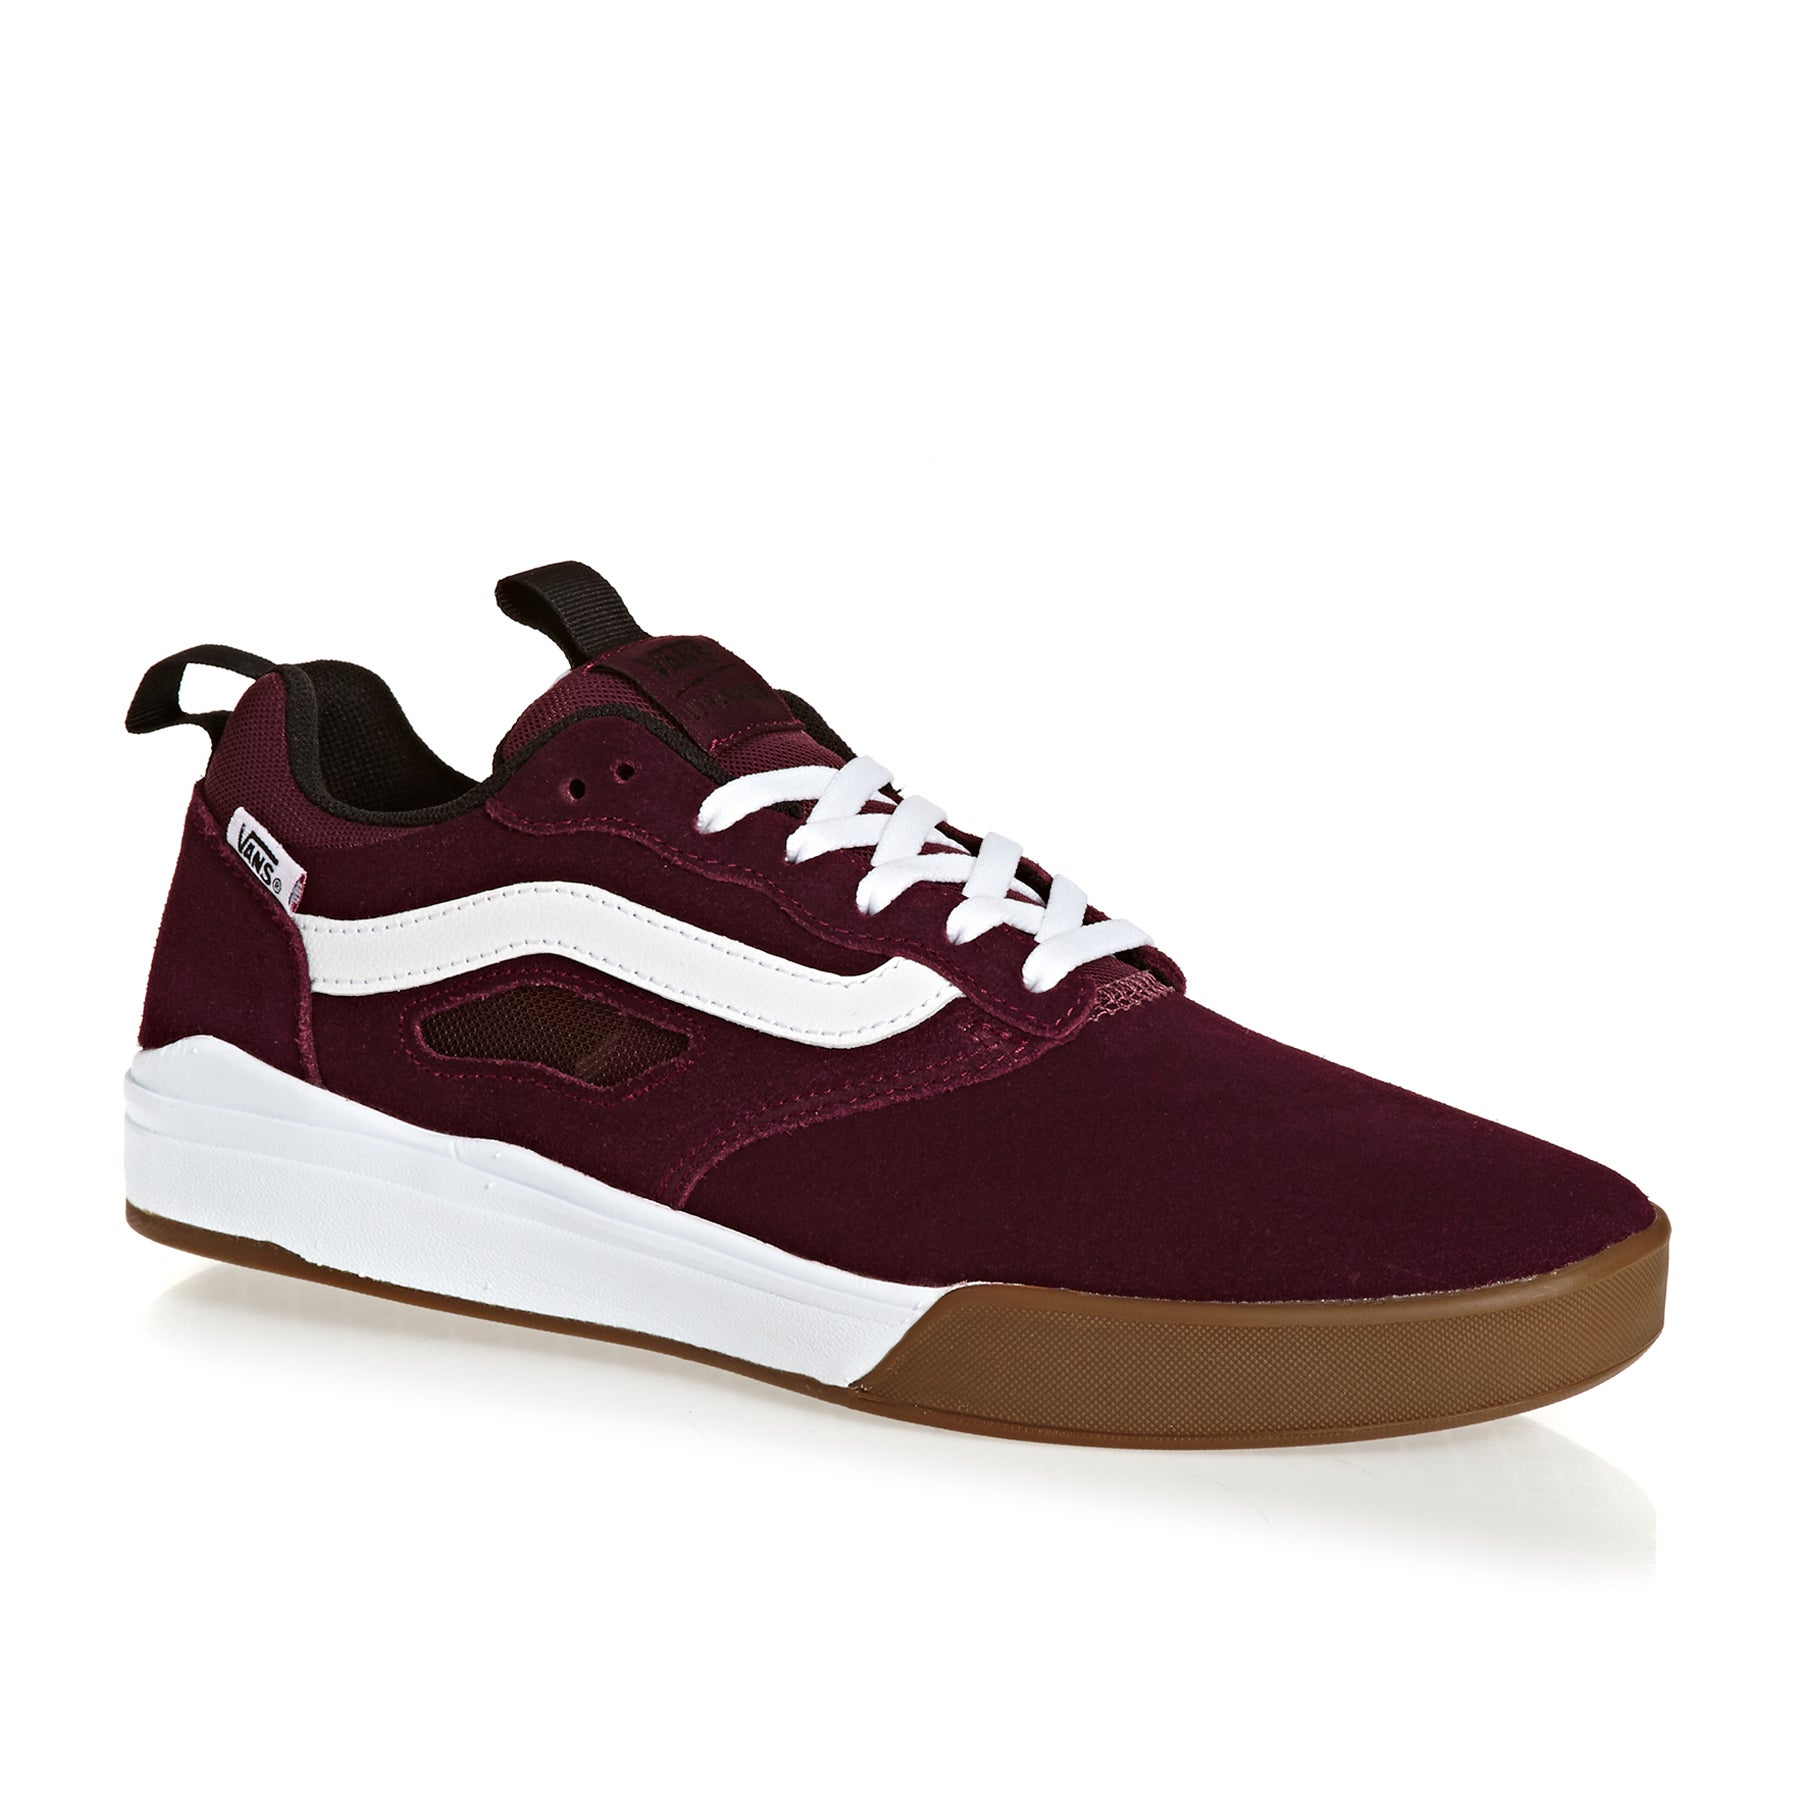 8a25125567 Vans UltraRange Pro Shoes available from Surfdome